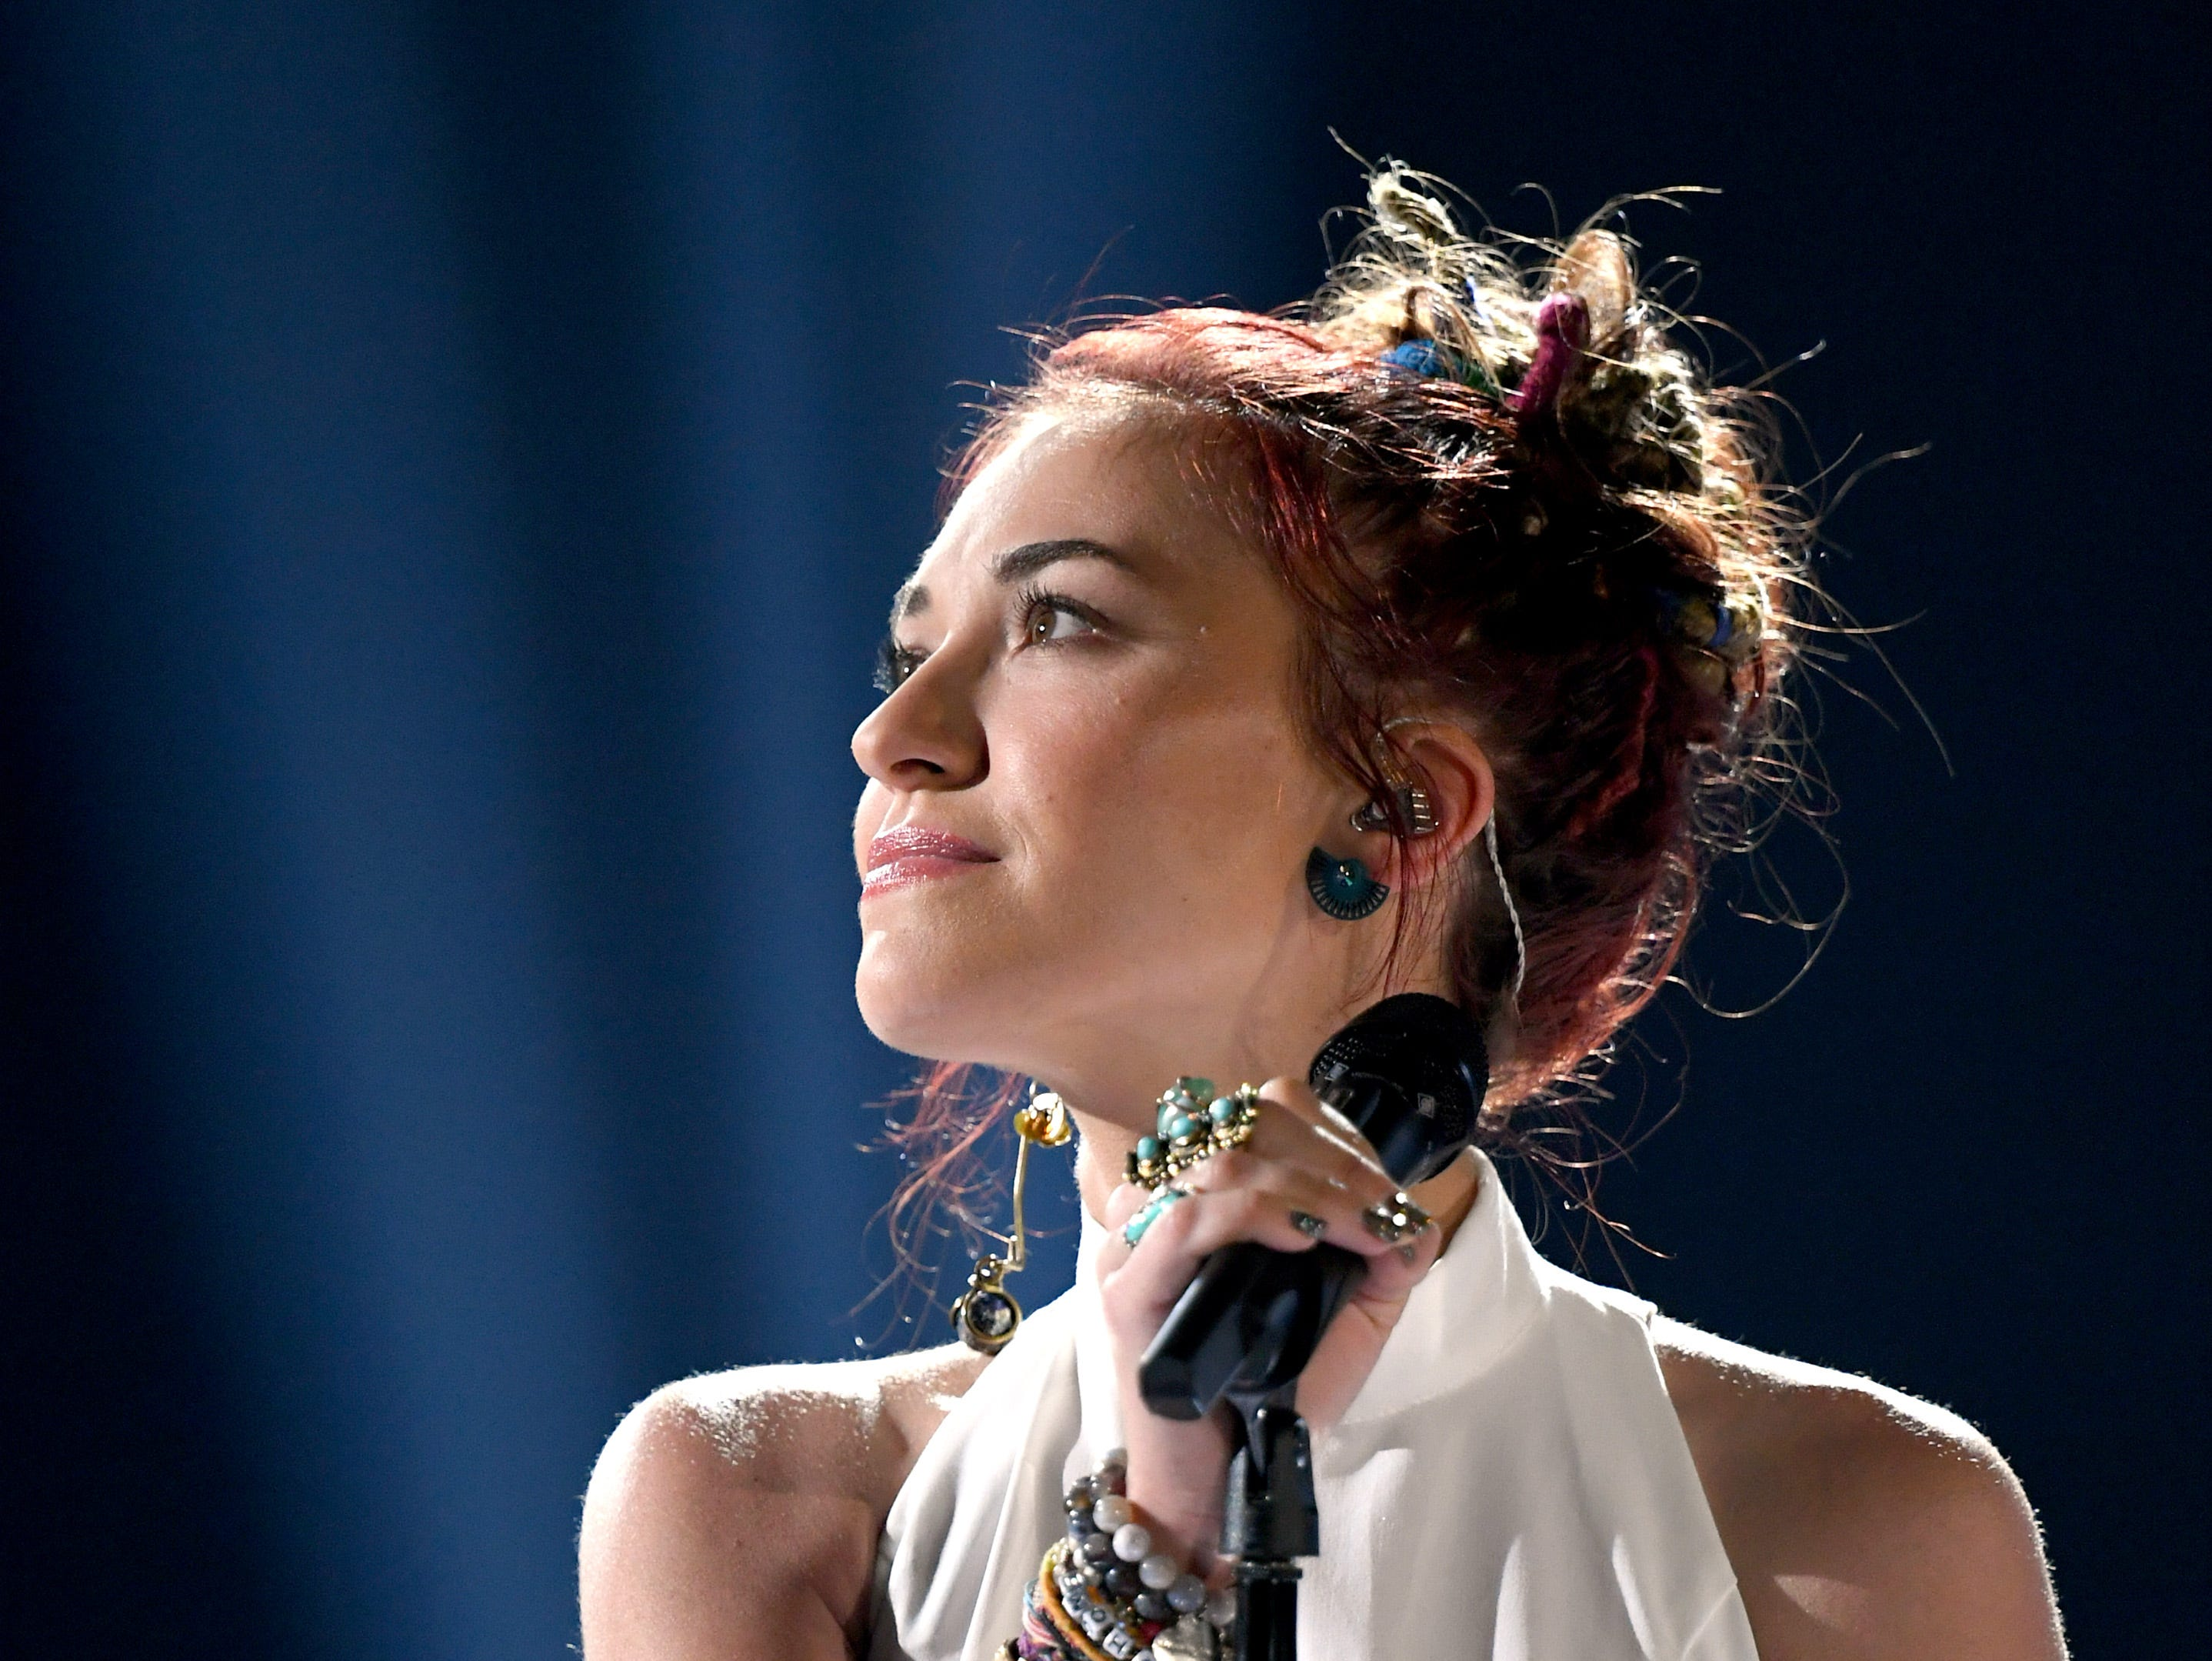 Lauren Daigle performs onstage during the 2019 Billboard Music Awards at MGM Grand Garden Arena on May 01, 2019 in Las Vegas, Nevada.